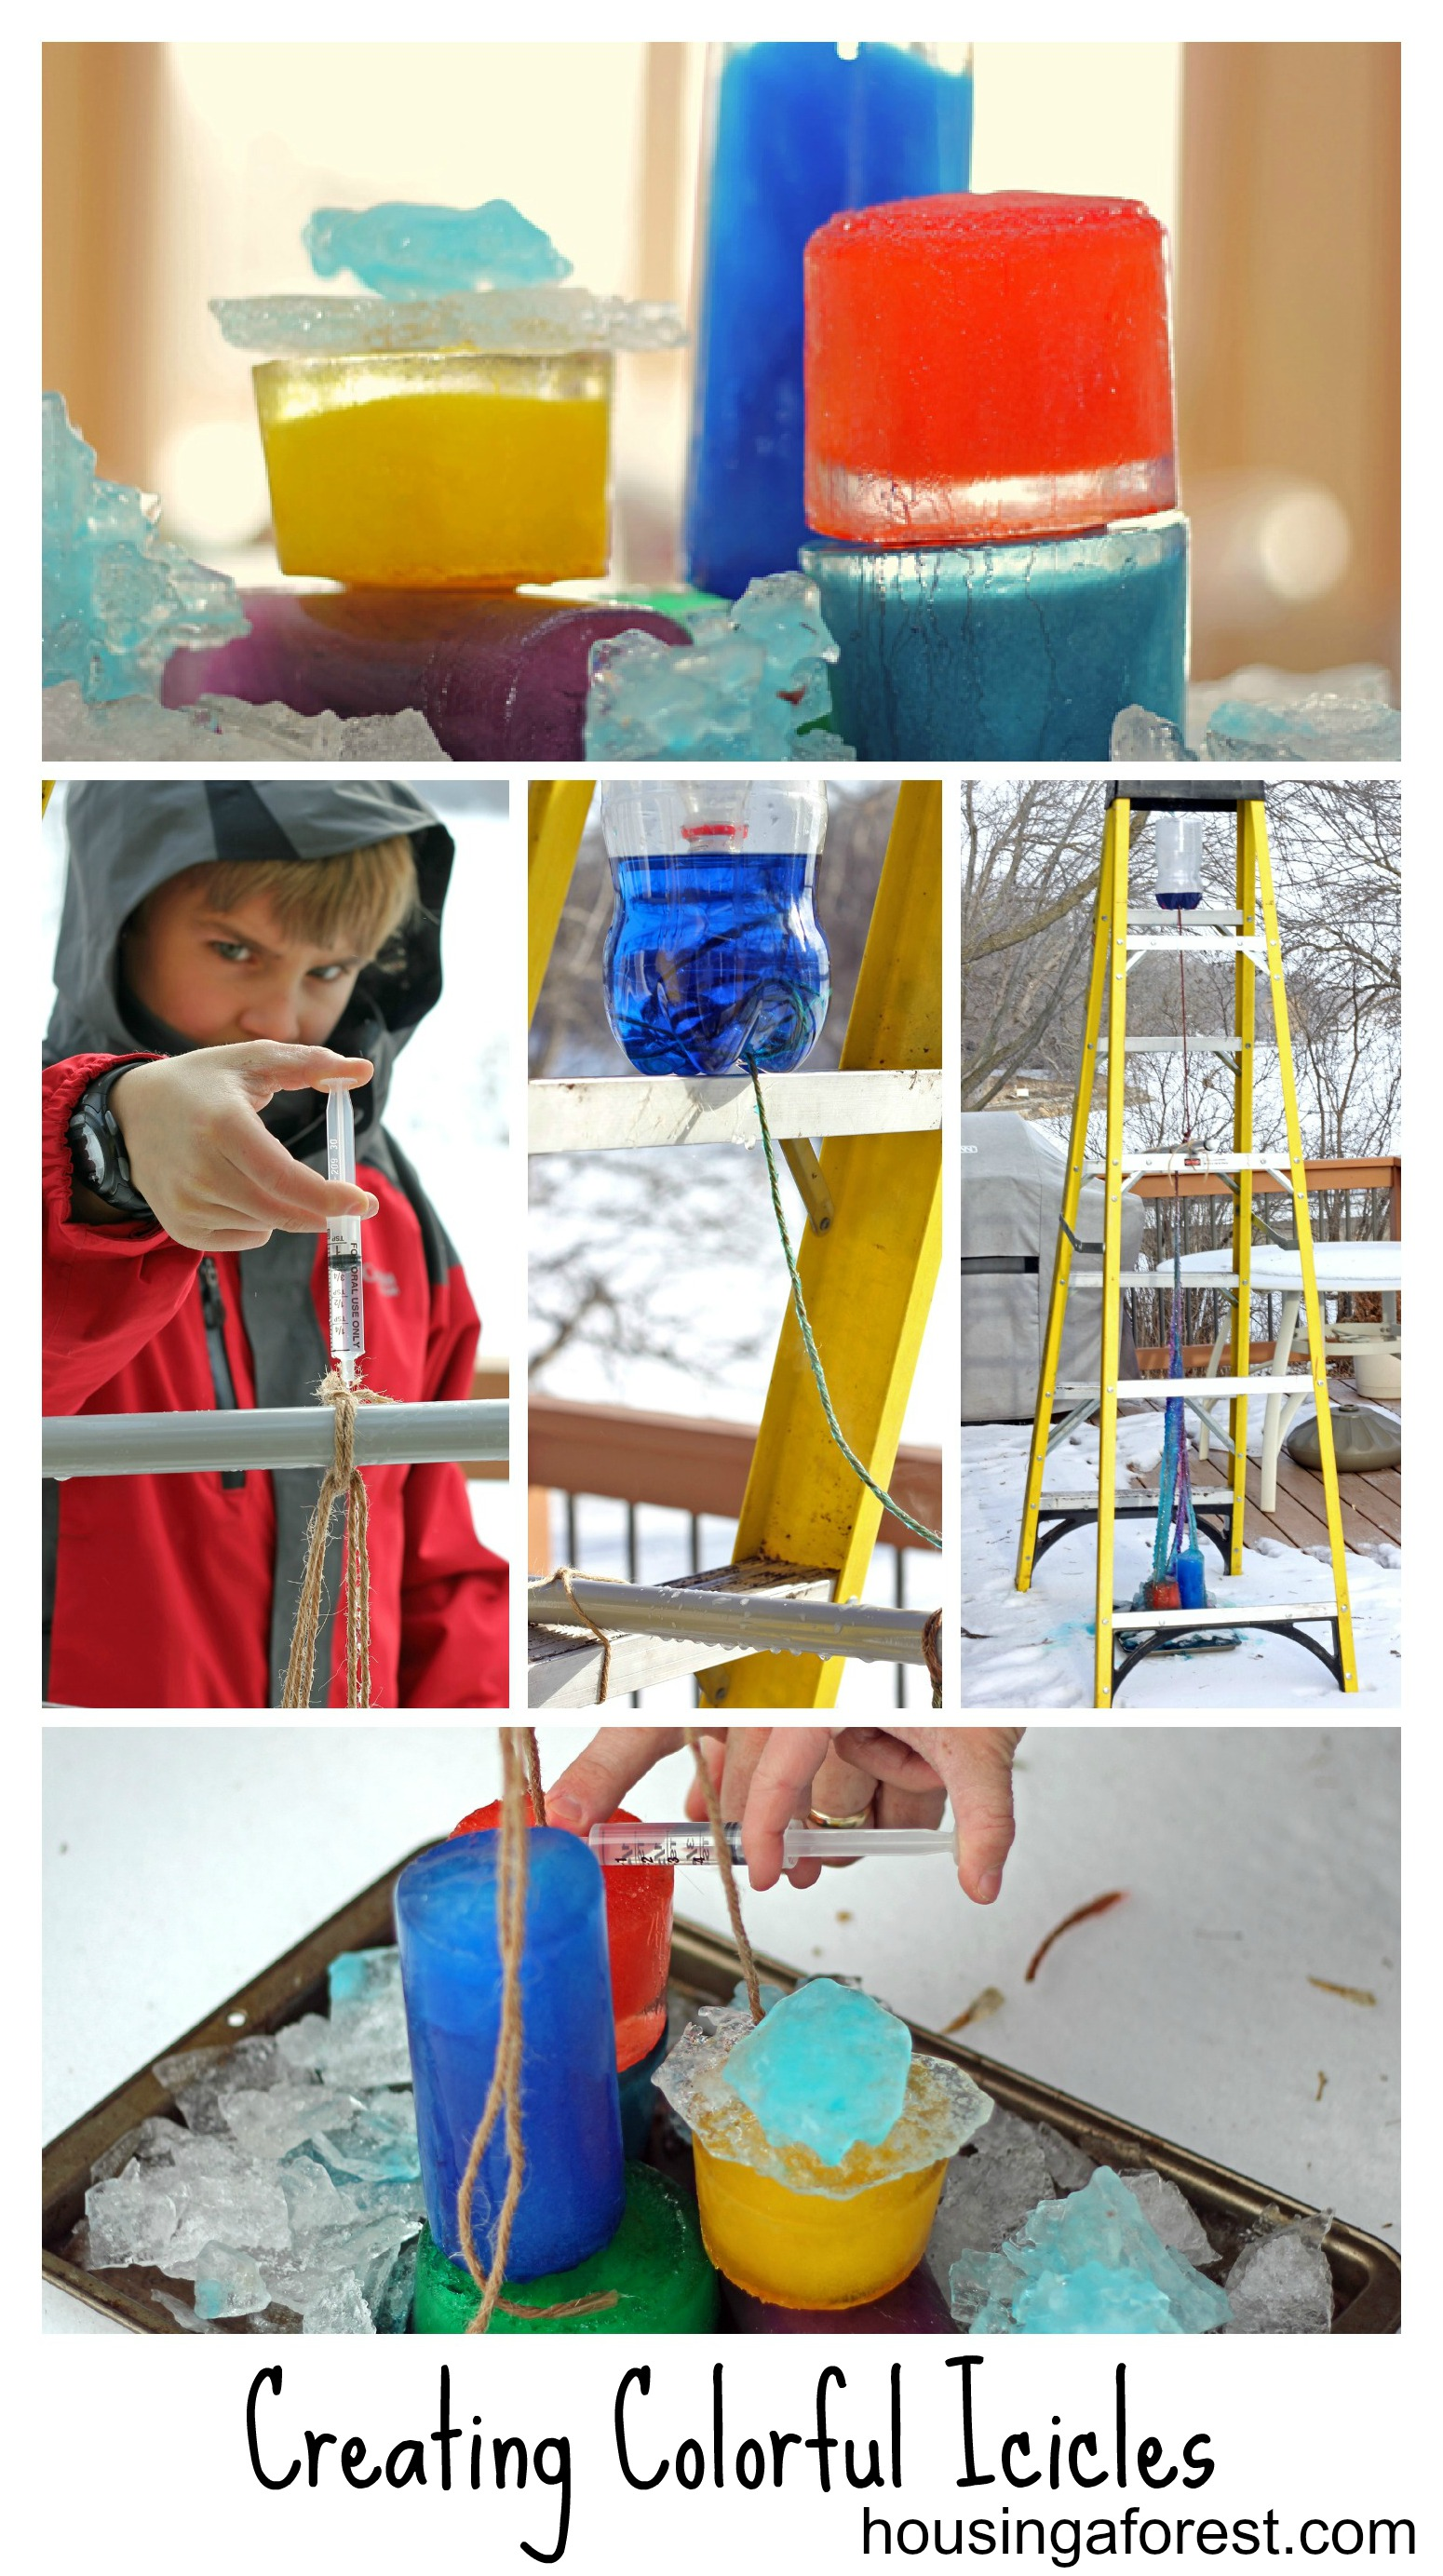 Creating Colorful Icicles